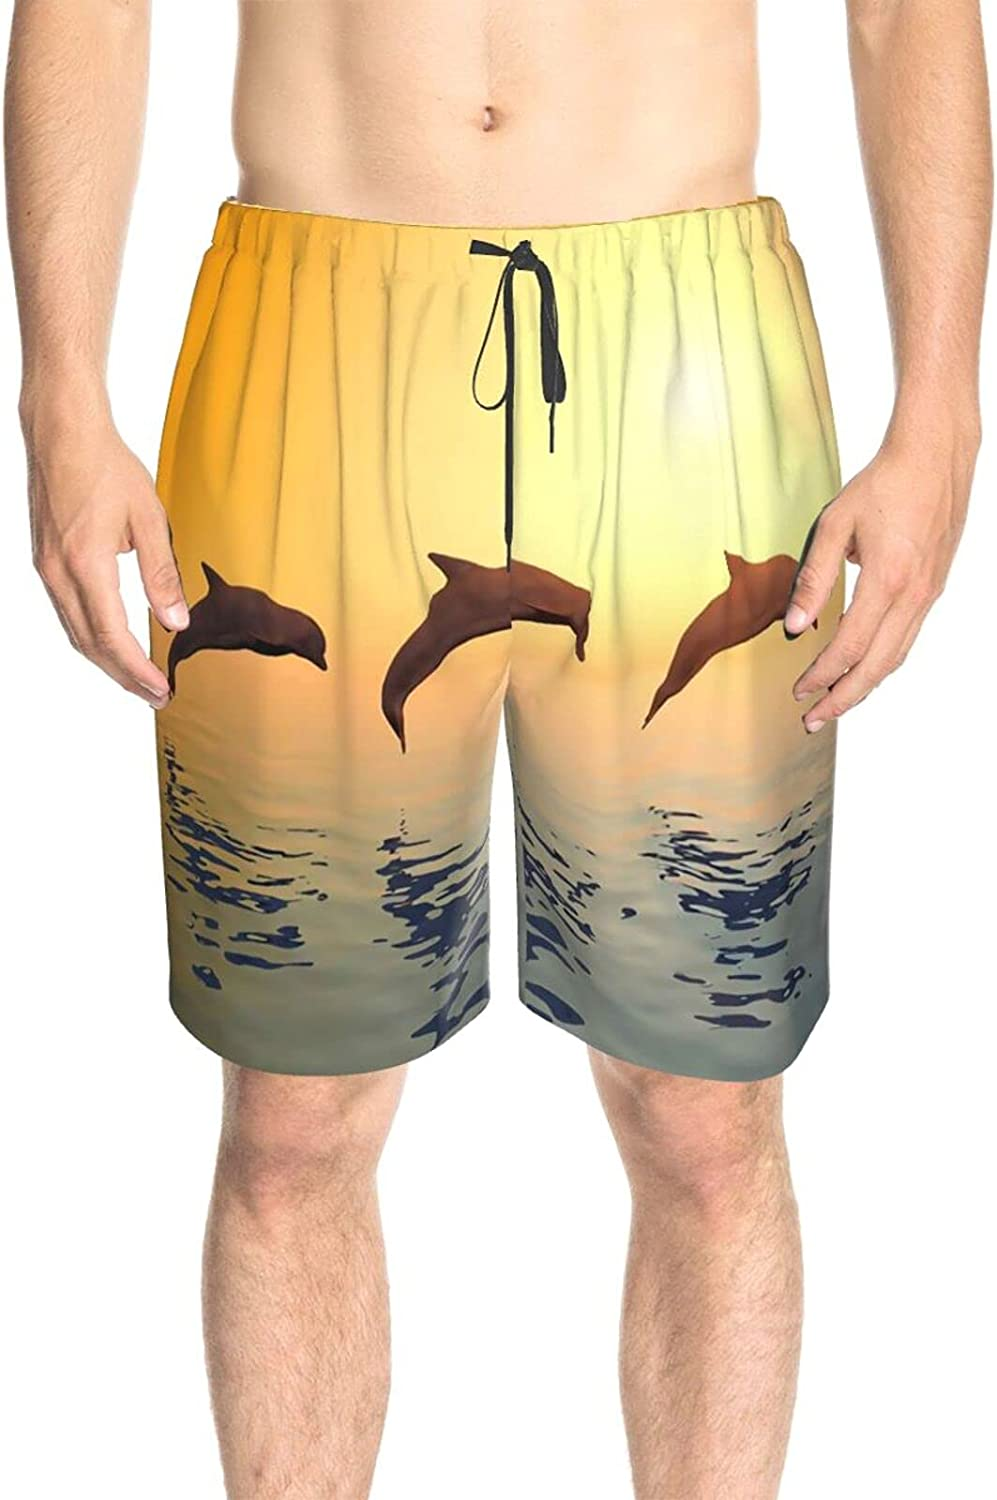 Men's Swim Shorts Jumping Dolphin Sunset Swim Board Shorts Quick Dry Comfy Athletic Swimwear Shorts with Pockets